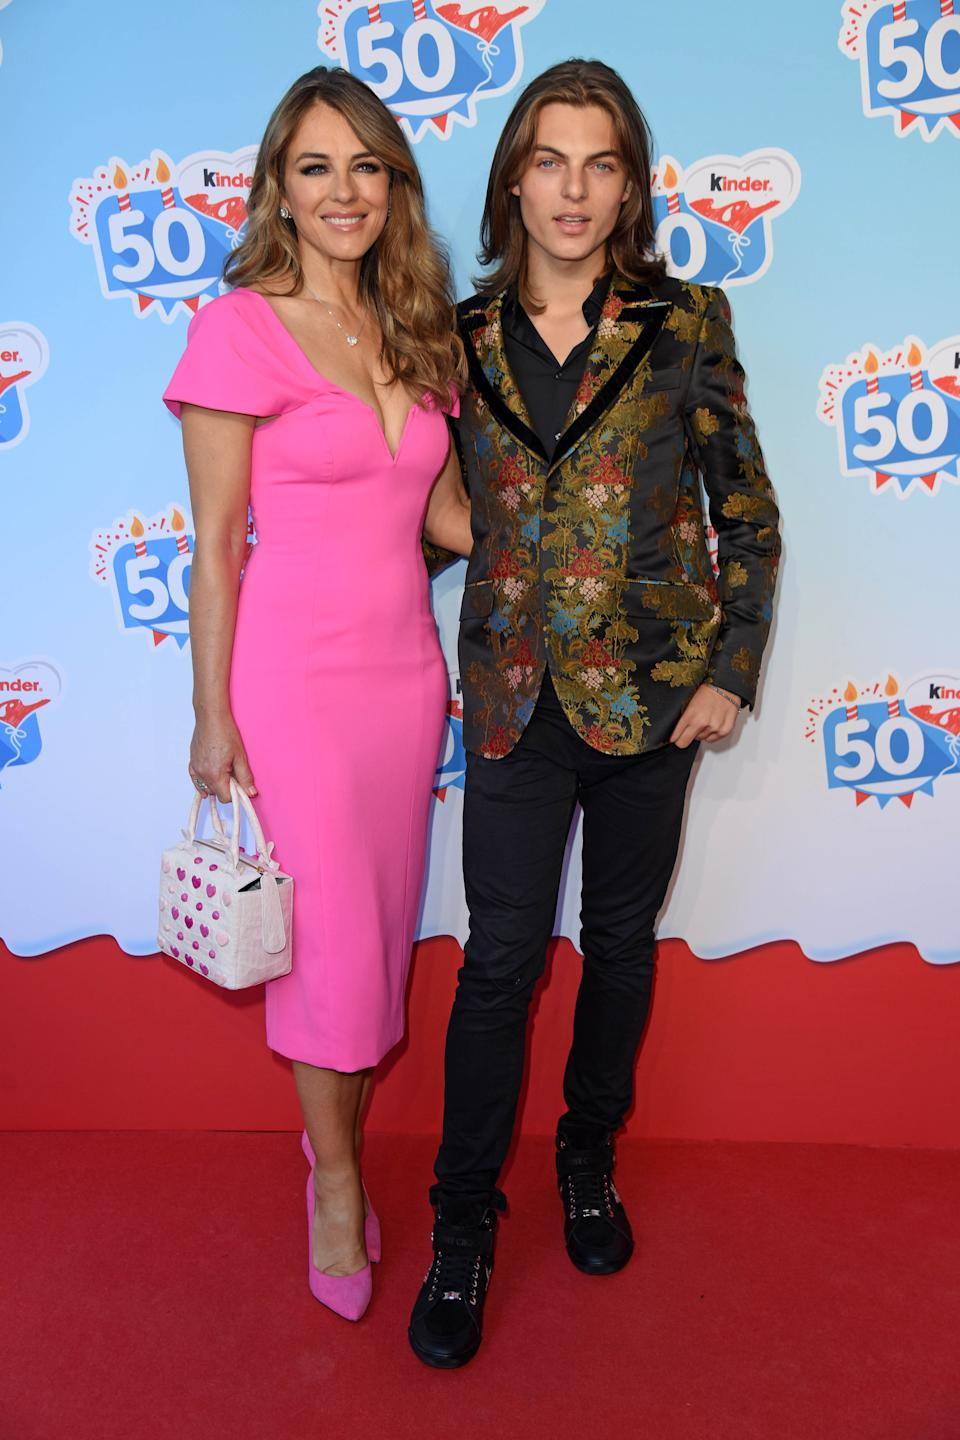 SOLTAU, GERMANY - OCTOBER 14: UK actress Elizabeth Liz Hurley and her son Damian Hurley during the 50th anniversary celebration of the brand Kinder (Ferrero) at Heidepark on October 14, 2018 in Soltau, Germany. (Photo by Tristar Media/Getty Images)